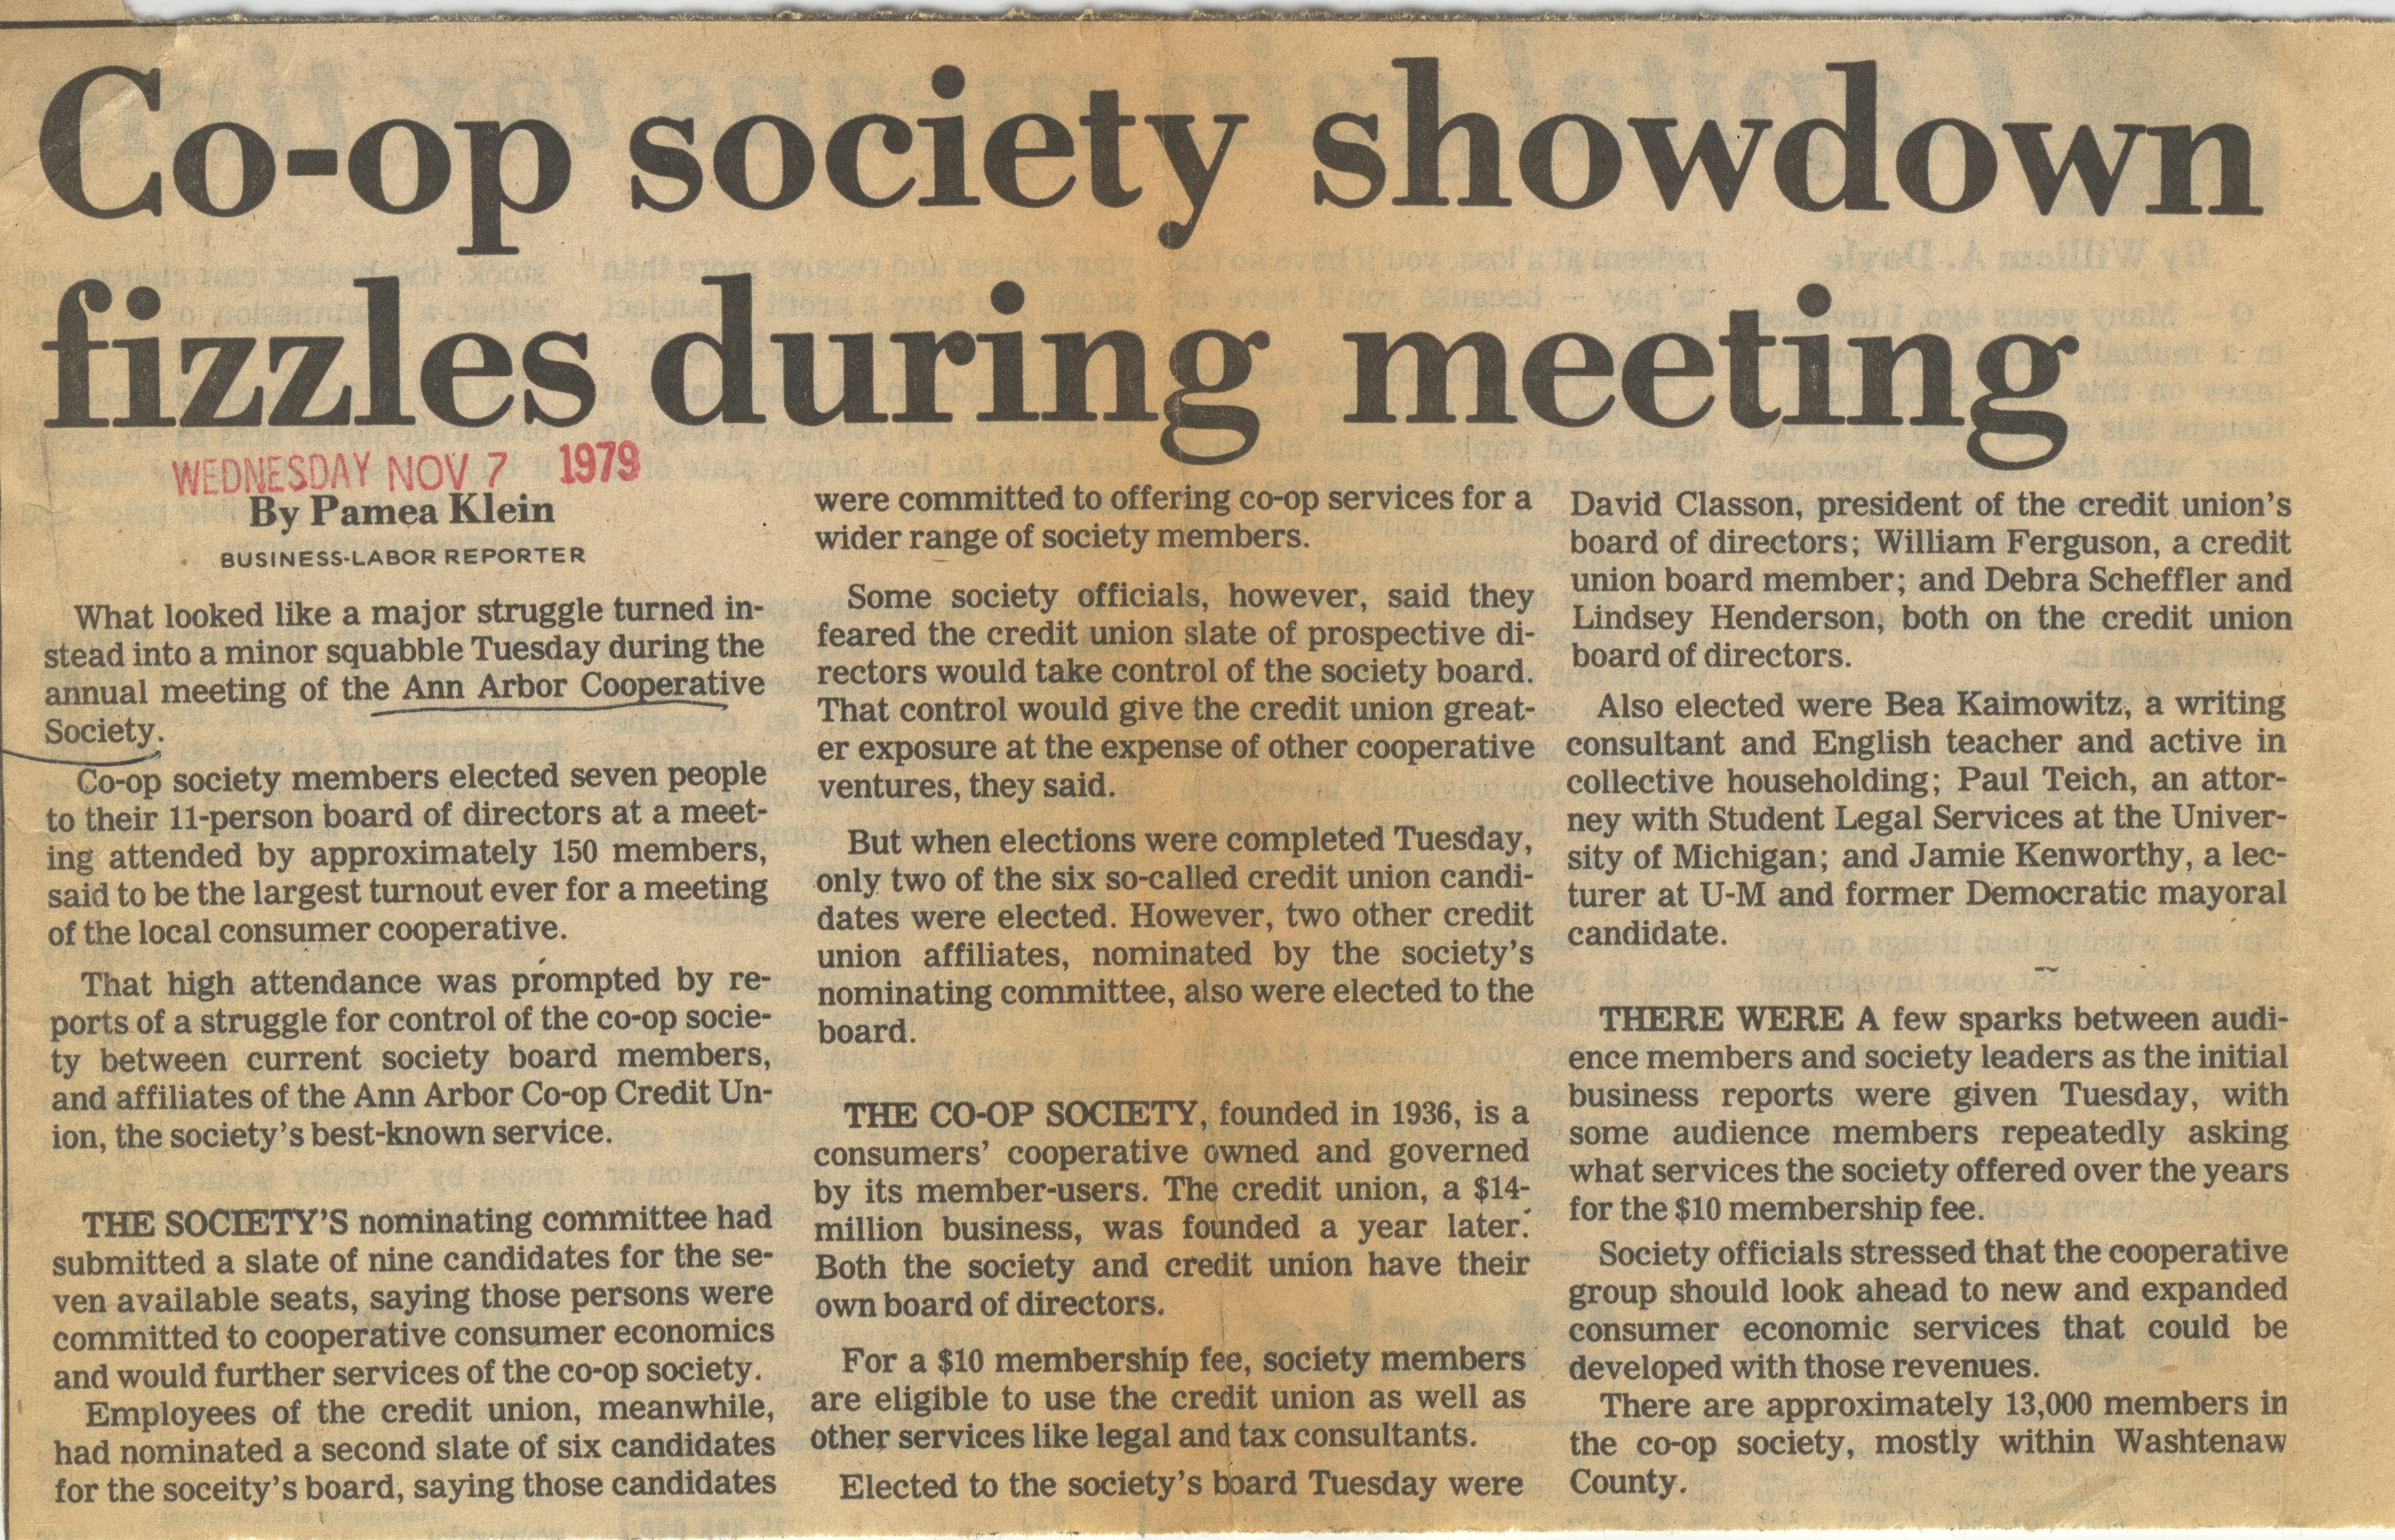 Co-op Society Showdown Fizzles During Meeting image